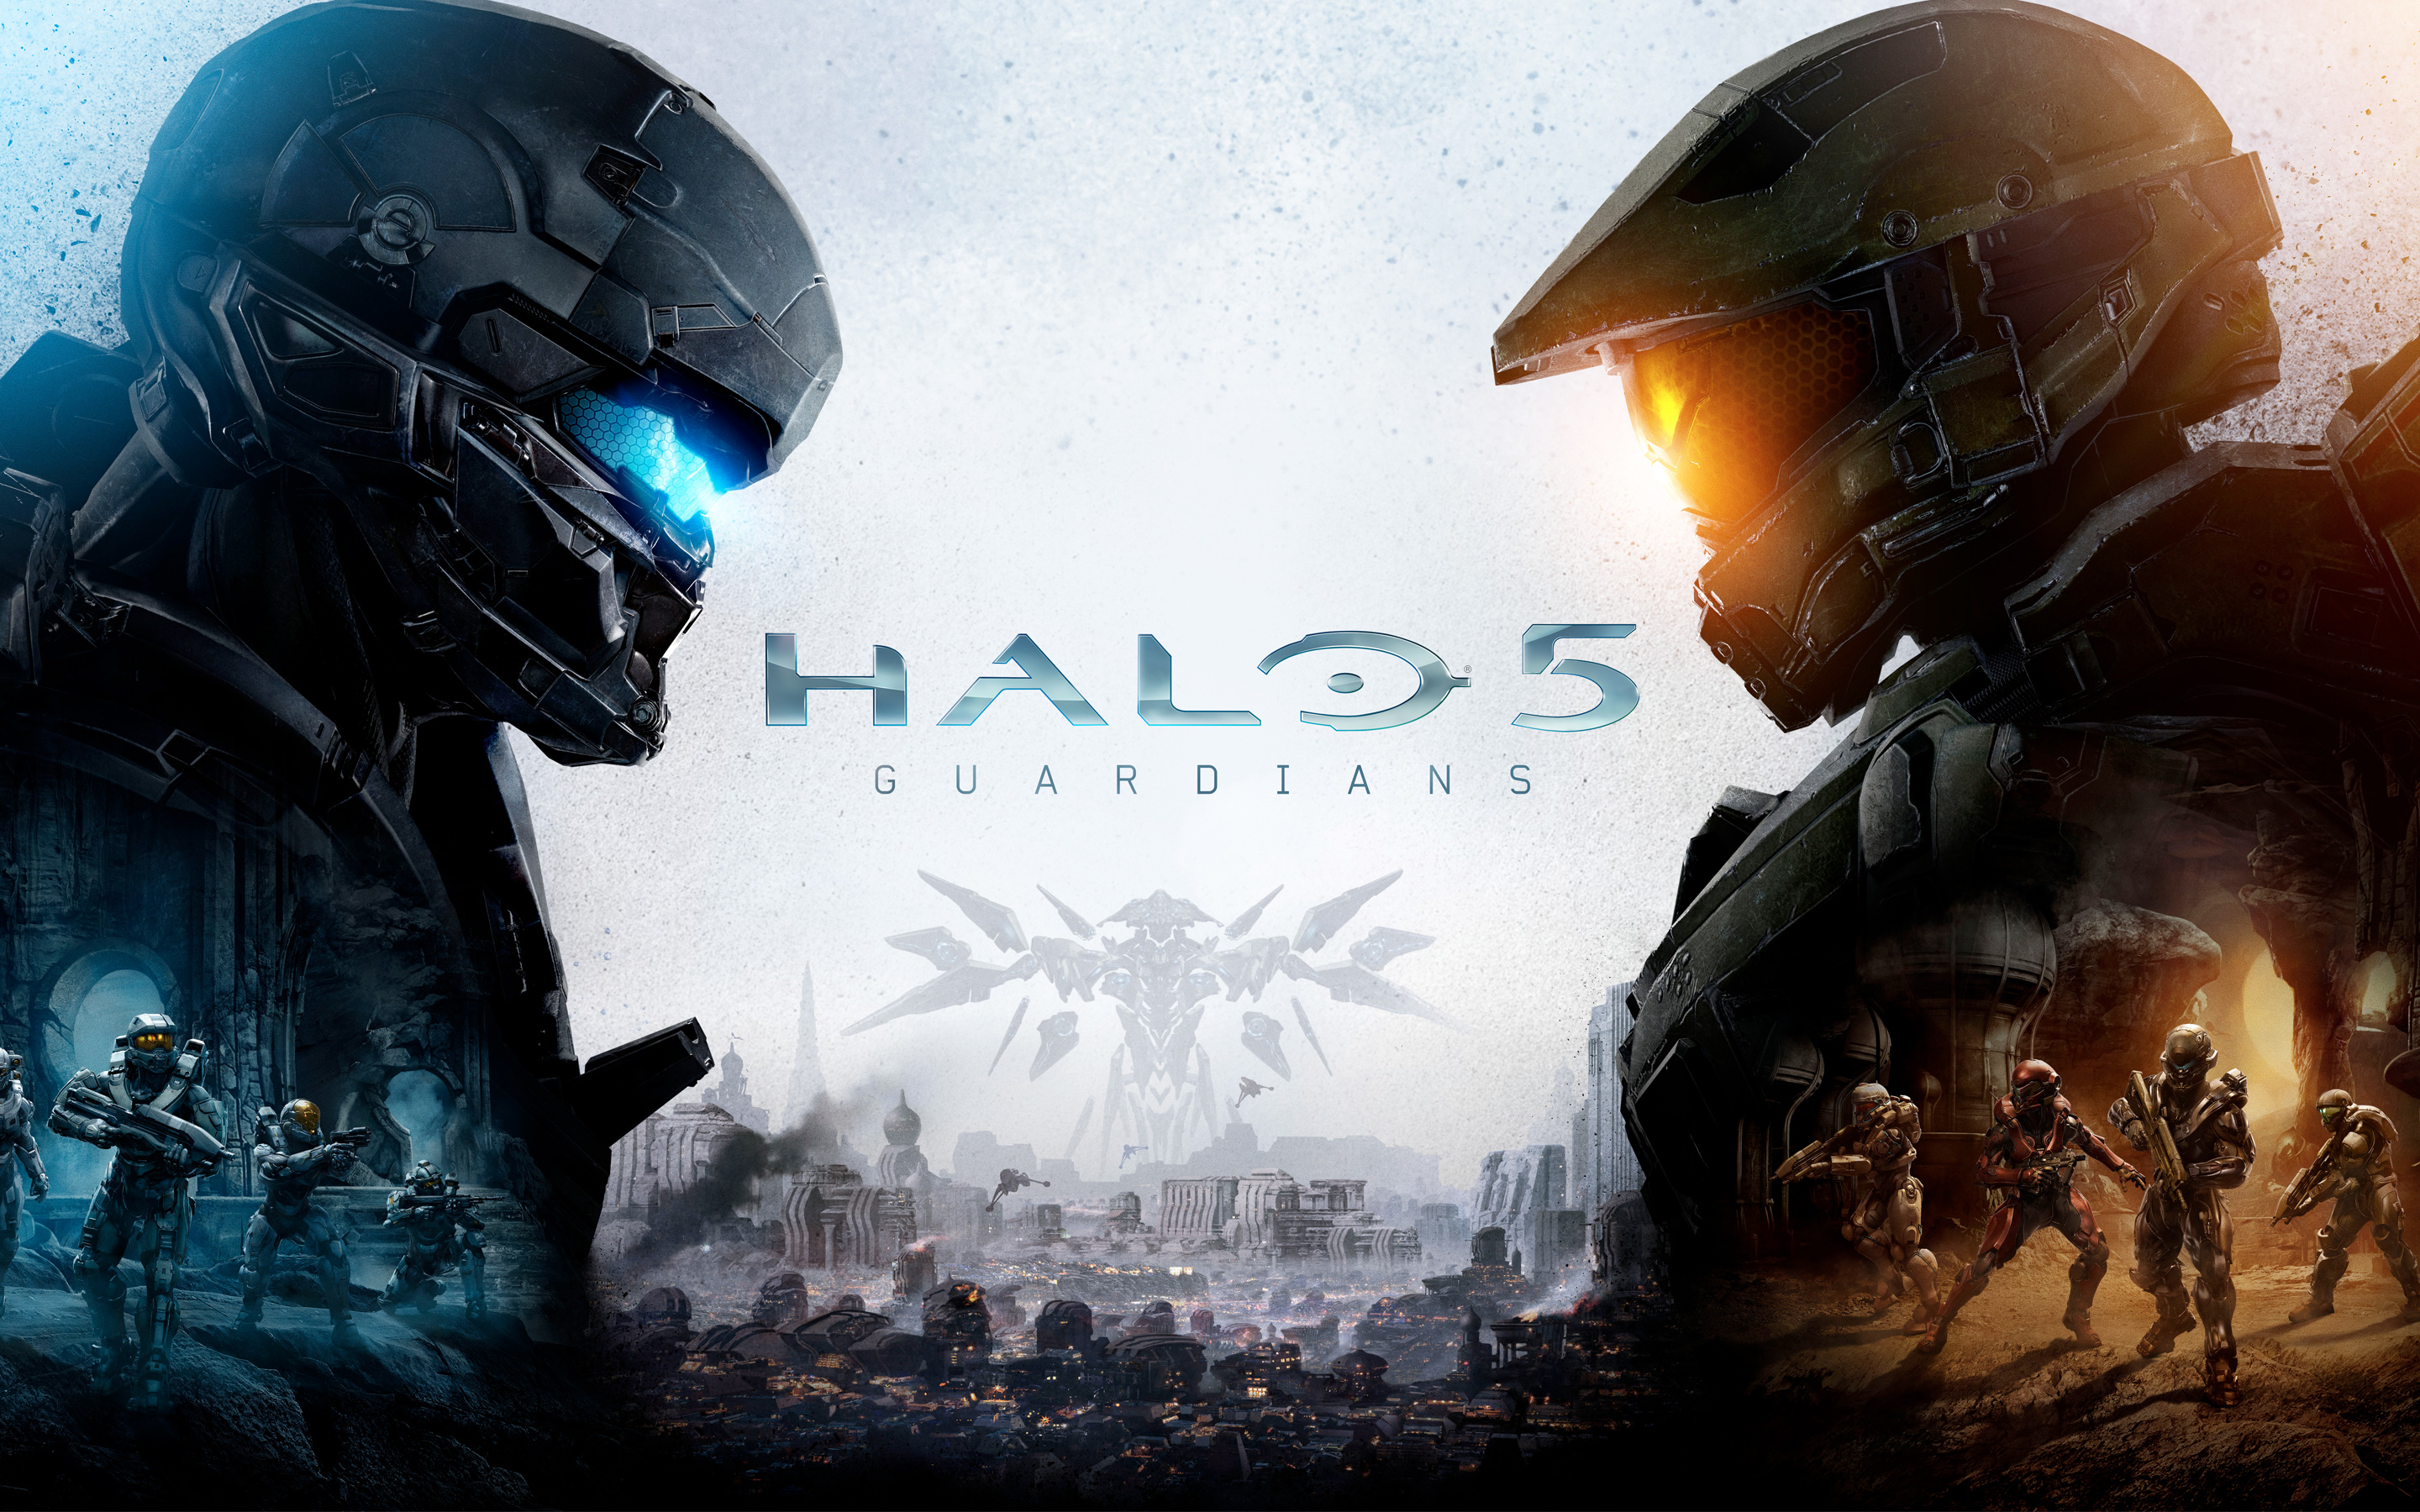 Iphone 5 wallpapers 0232 7995 the wondrous pics - Halo 5 Guardians Wallpapers Hd Wallpapers